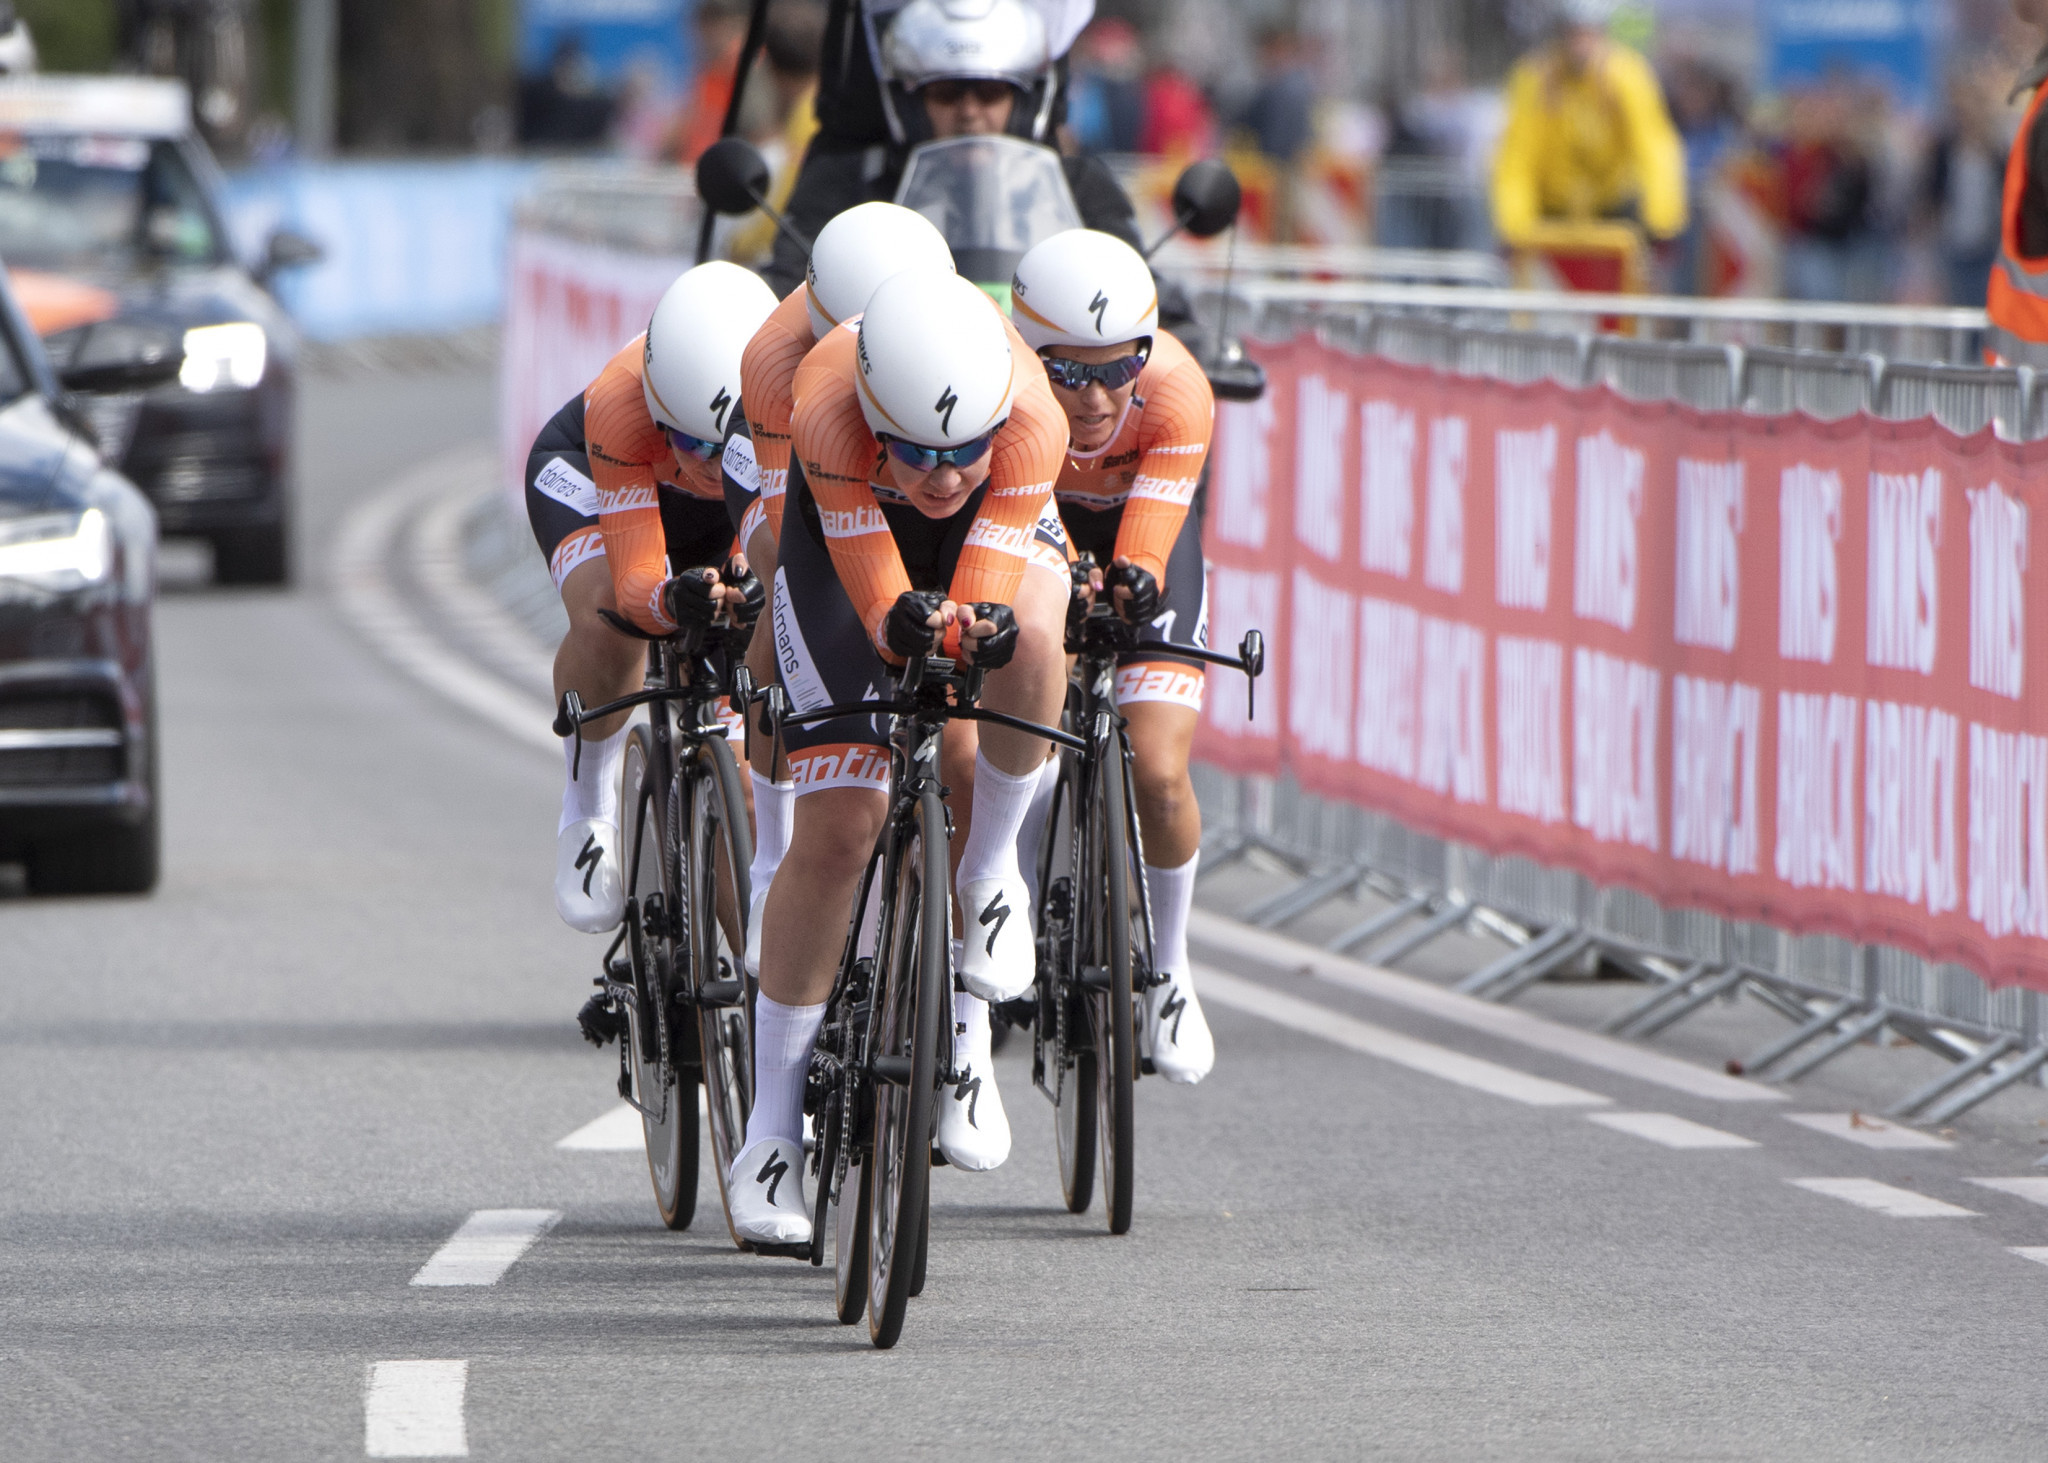 Boels-Dolmans out to claim fourth consecutive title at Postnord Vårgårda WestSweden TTT